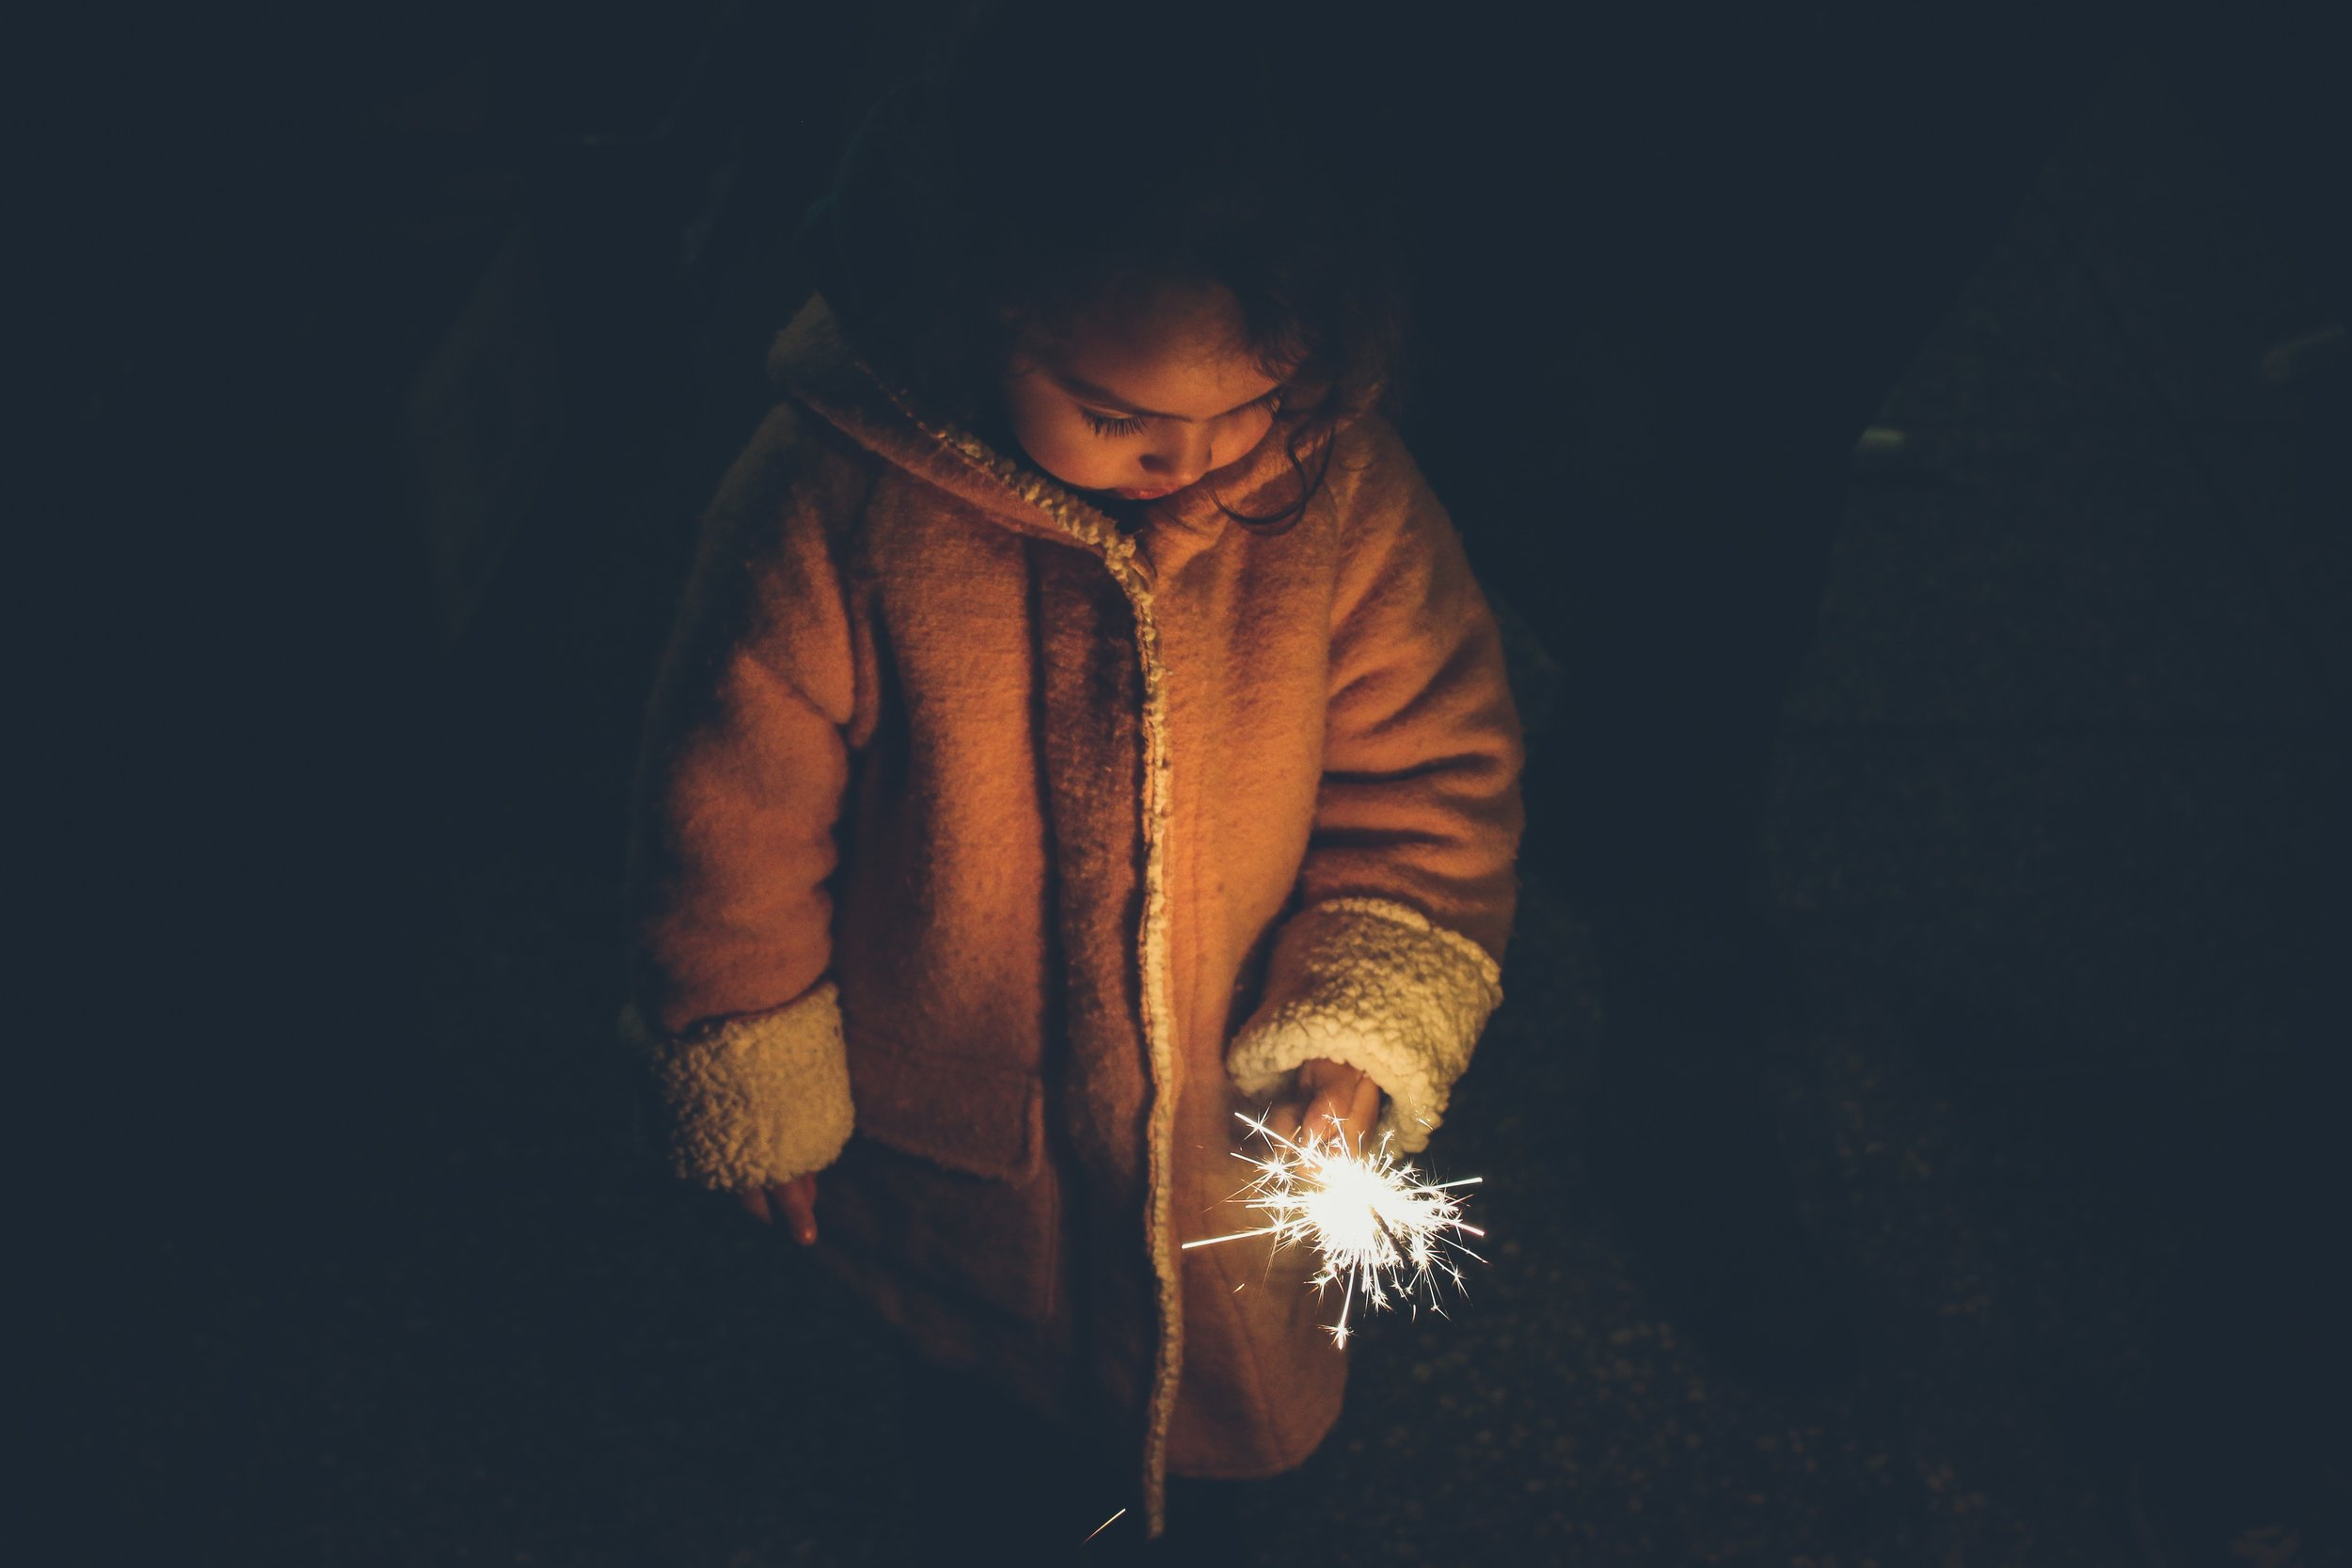 girl-sparkler-new-year.jpg